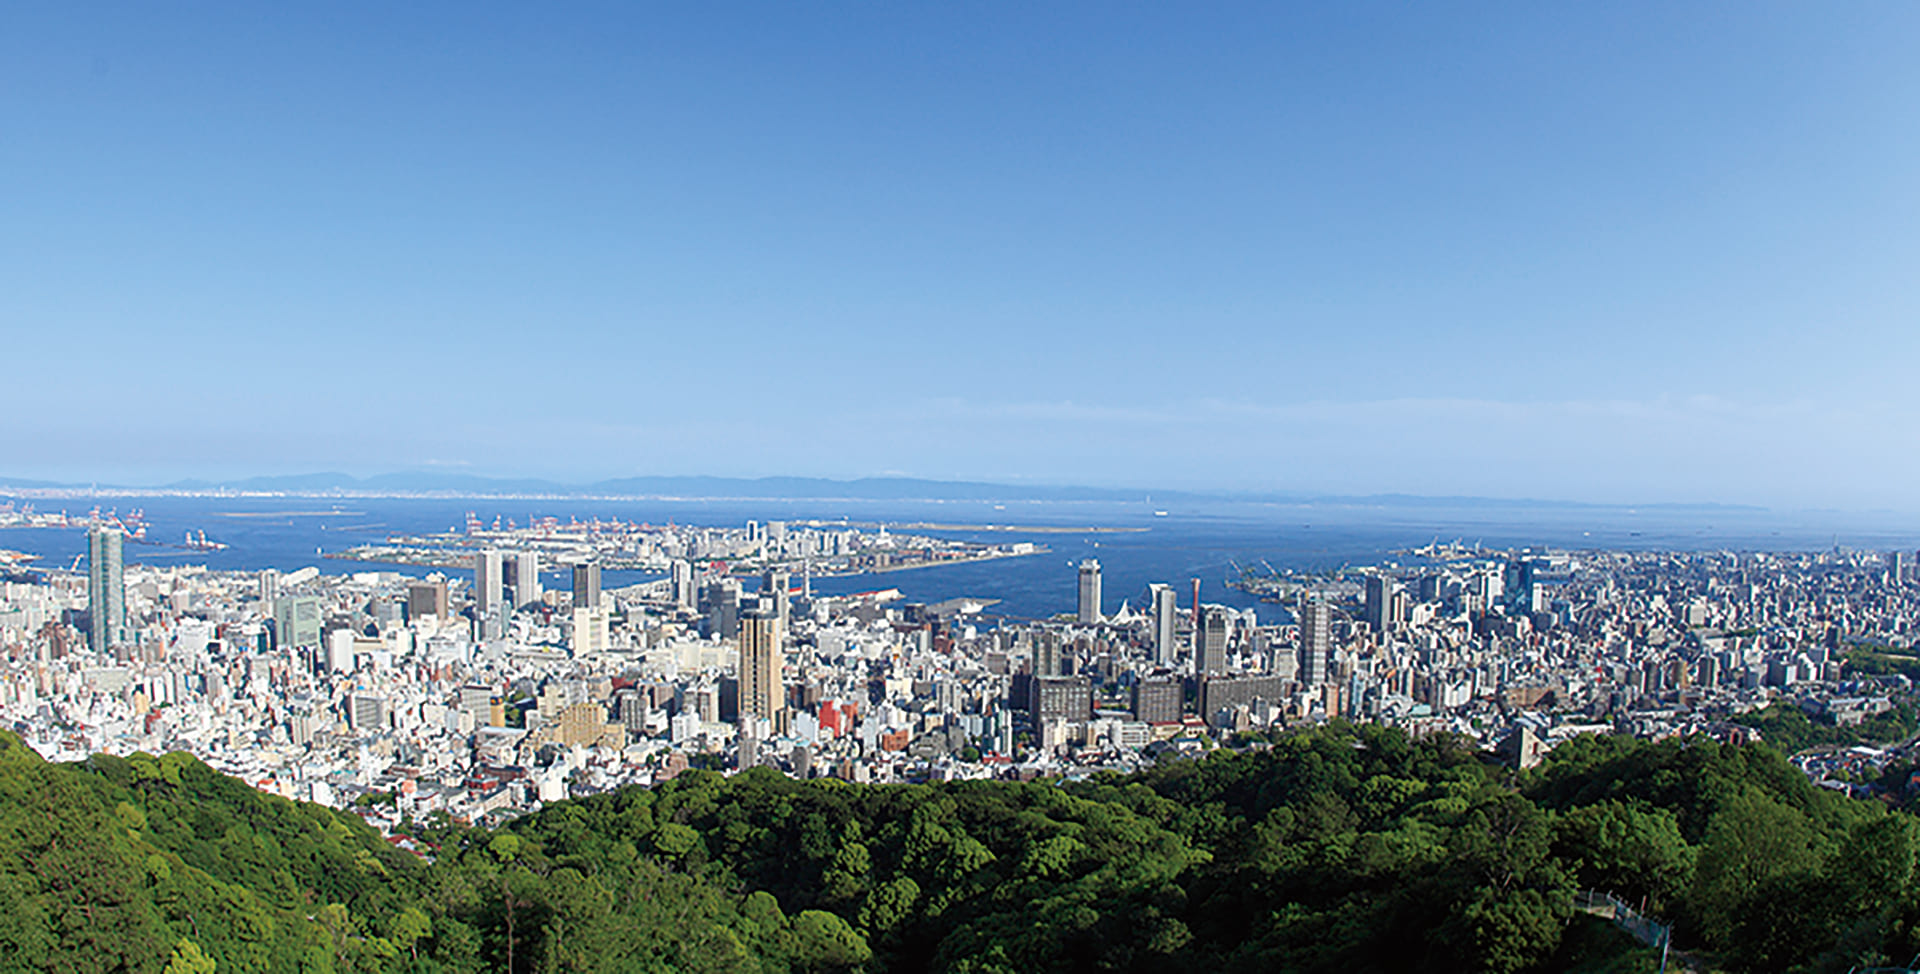 Express bus. View from Mt. Rokko